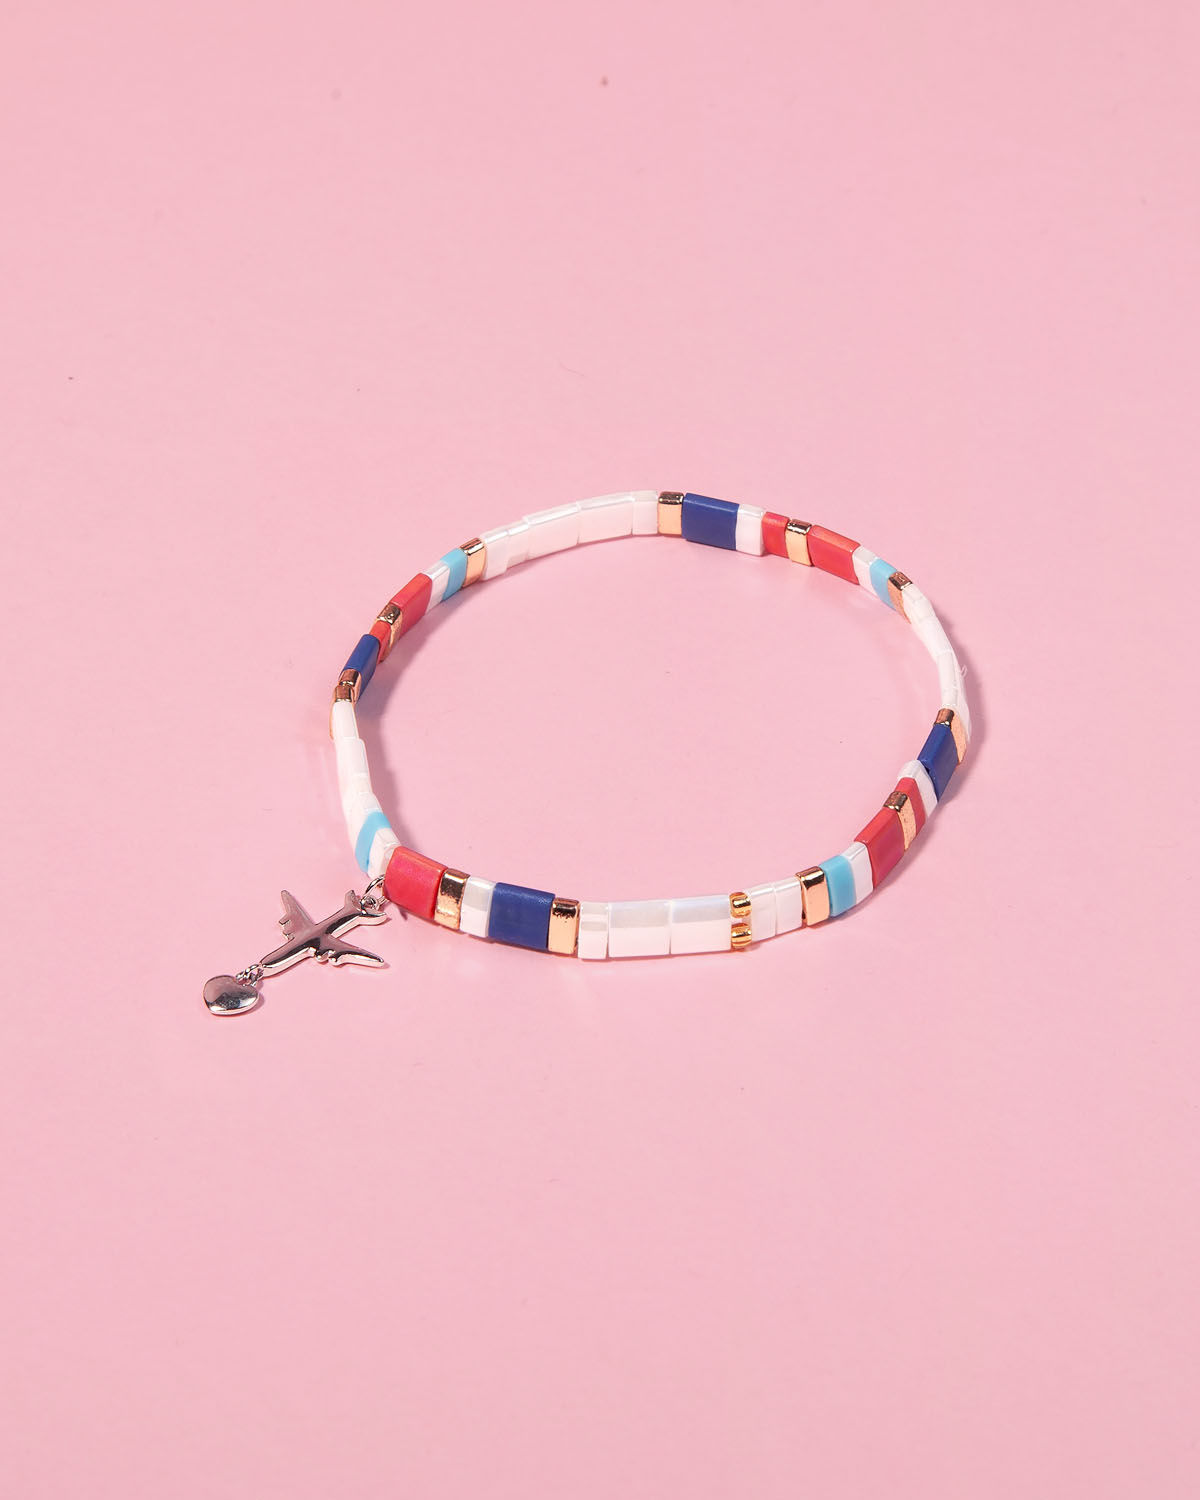 The Airplane Caramel Bracelet in Crispy Moonlight